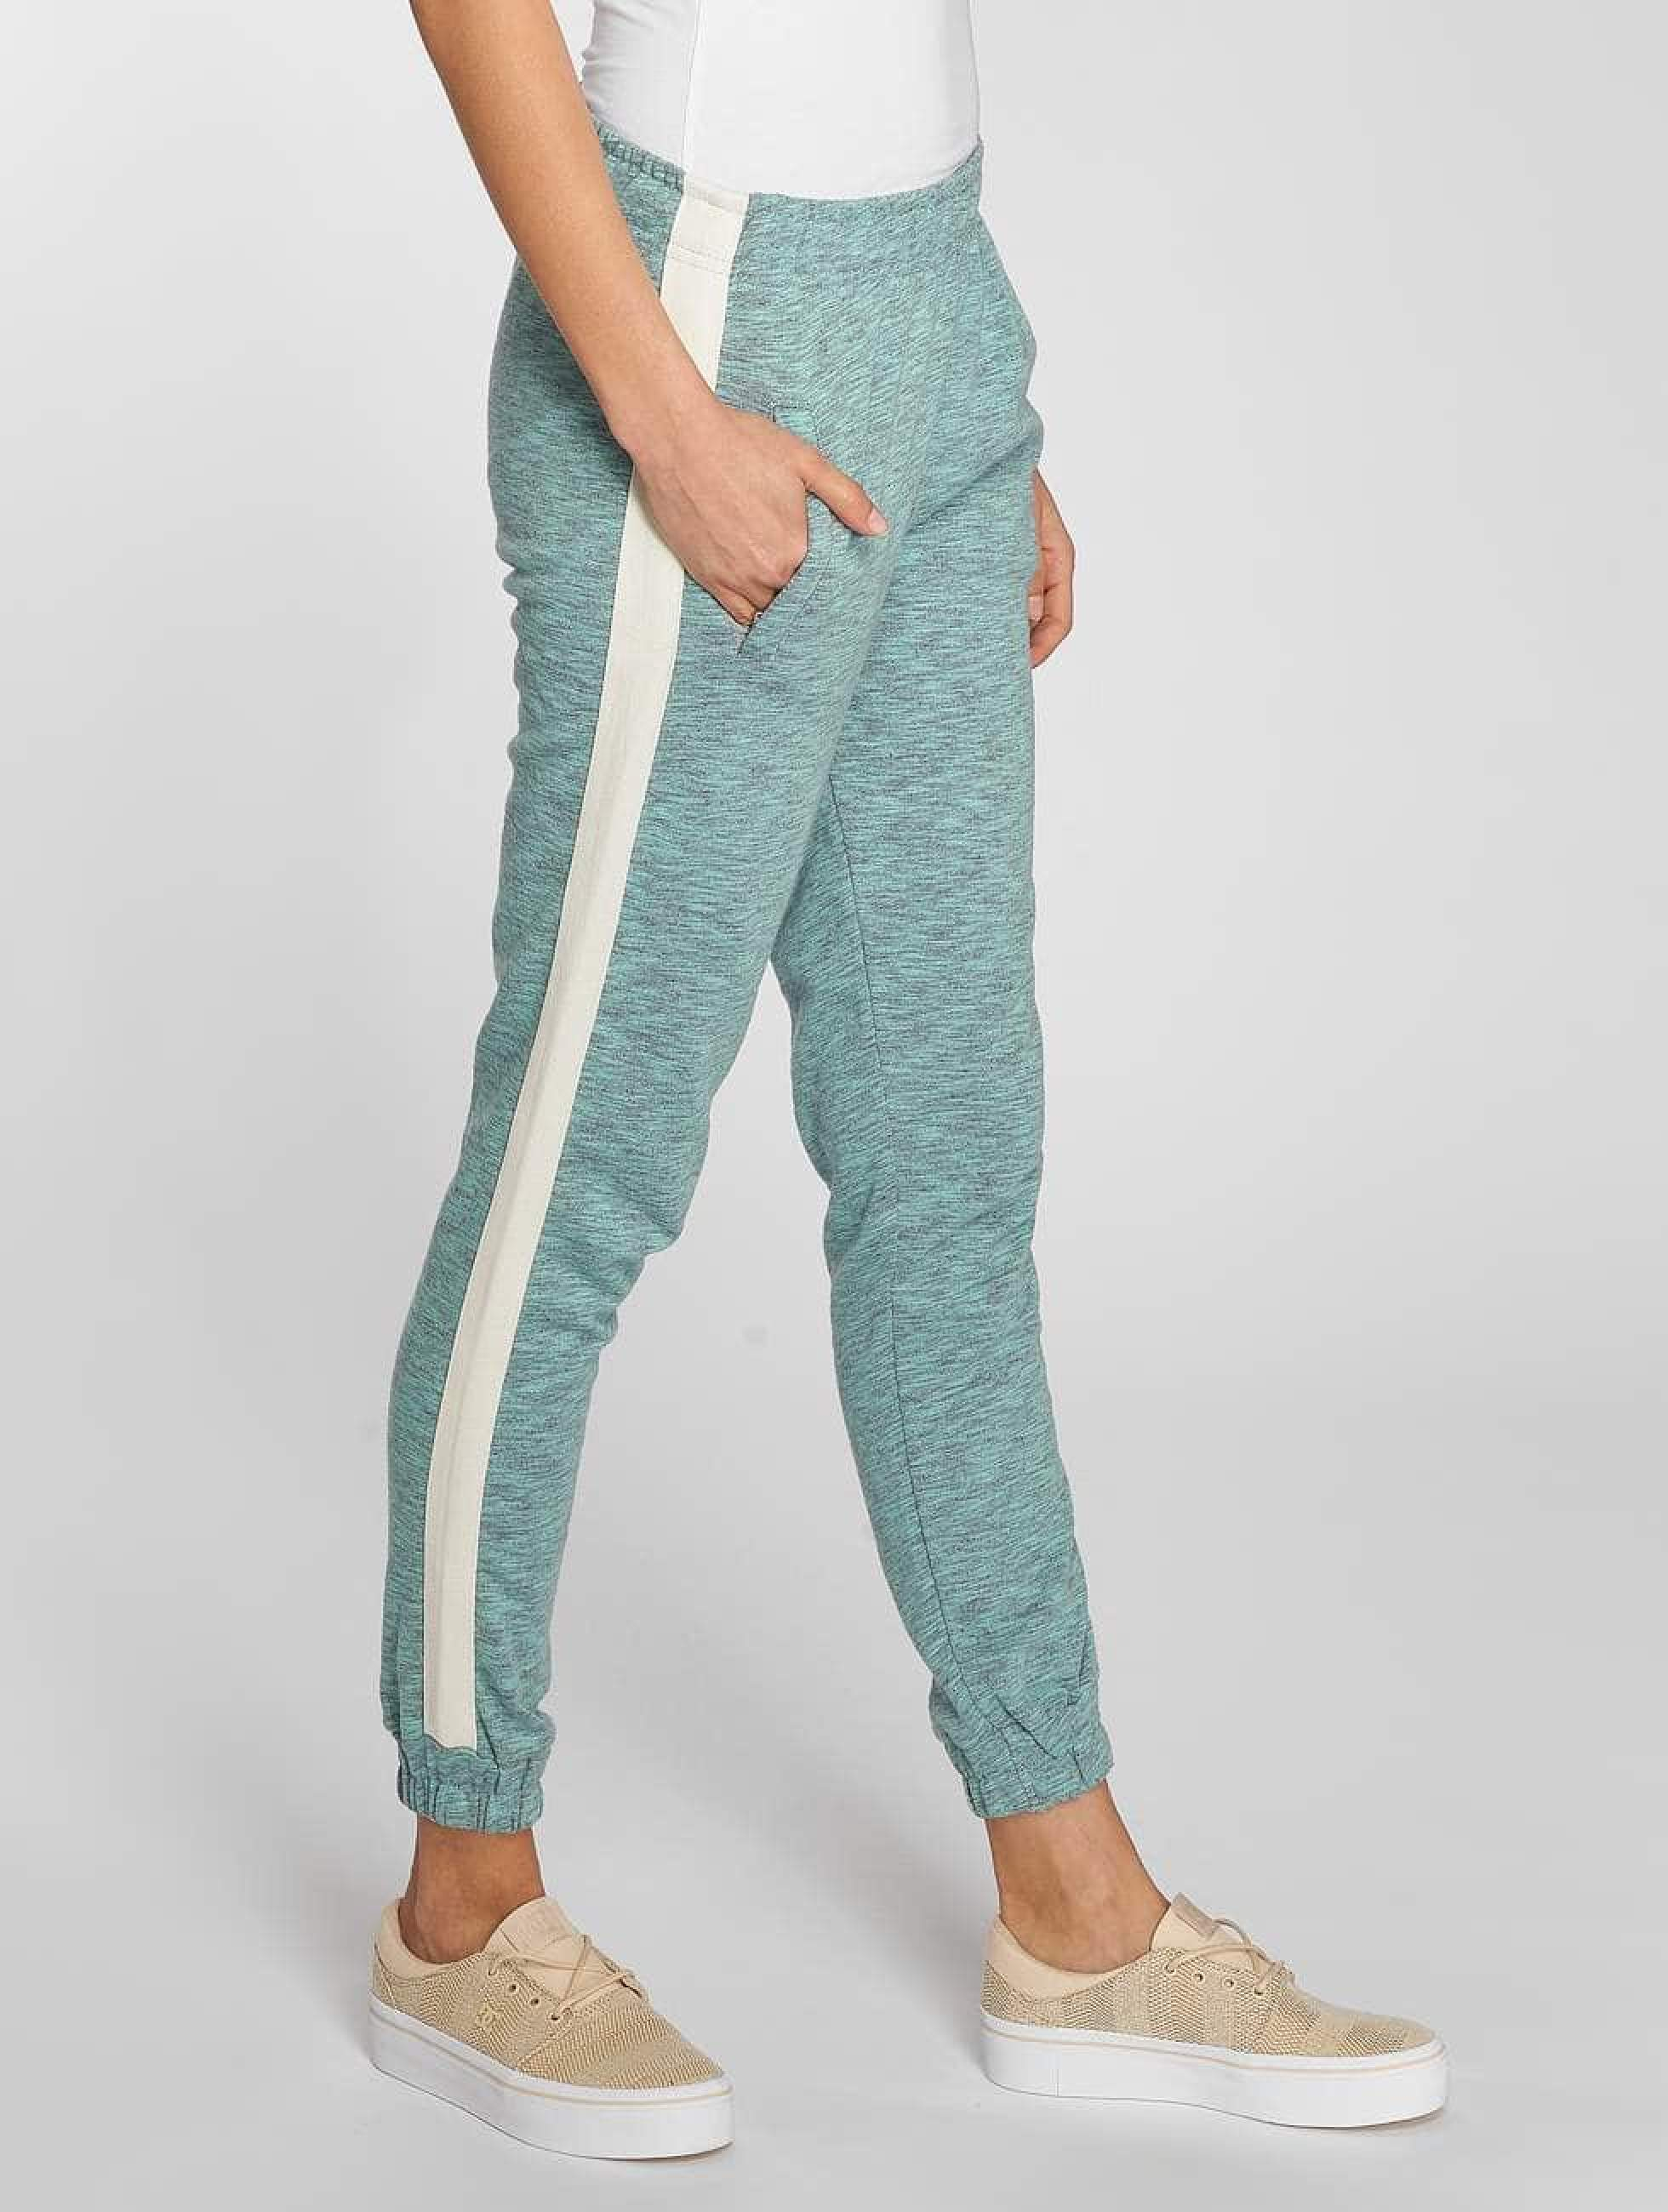 Just Rhyse / Sweat Pant Calasetta in turquoise XS